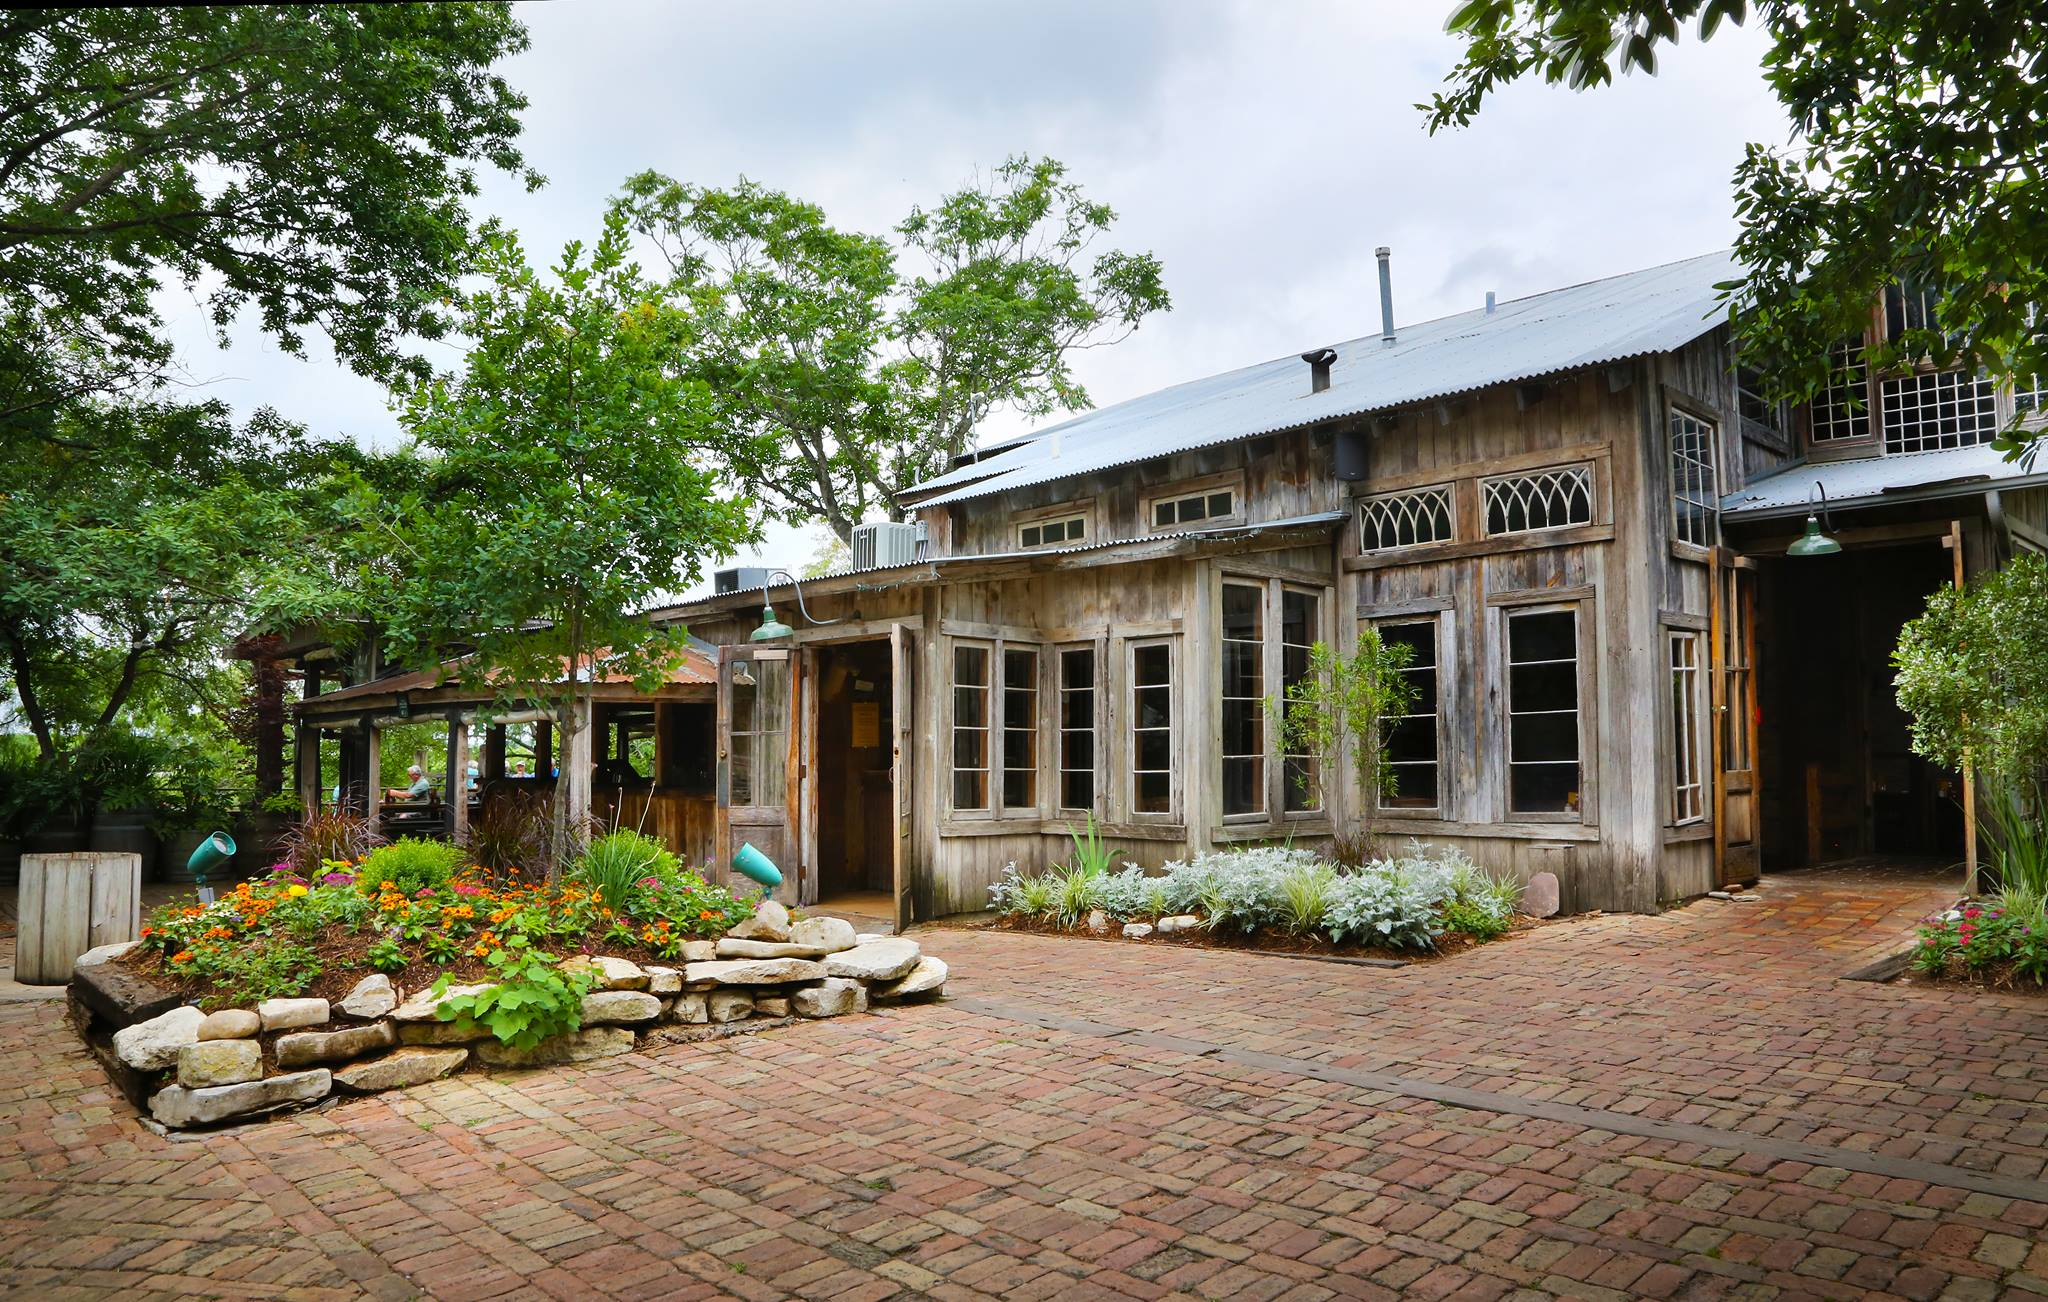 Dining in texas hill country mapped eater austin for Texas hill country style